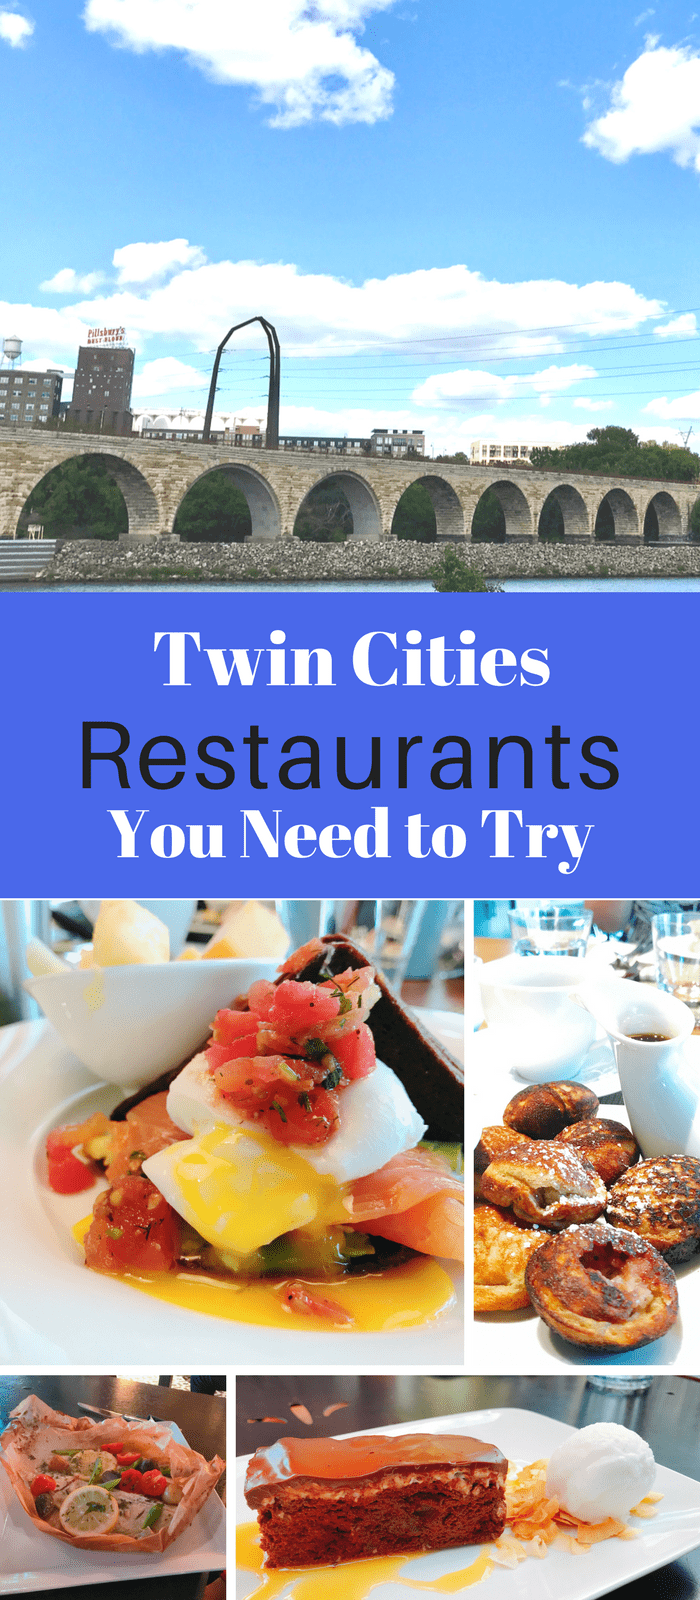 6 Twin Cities Restaurants You Need to Try